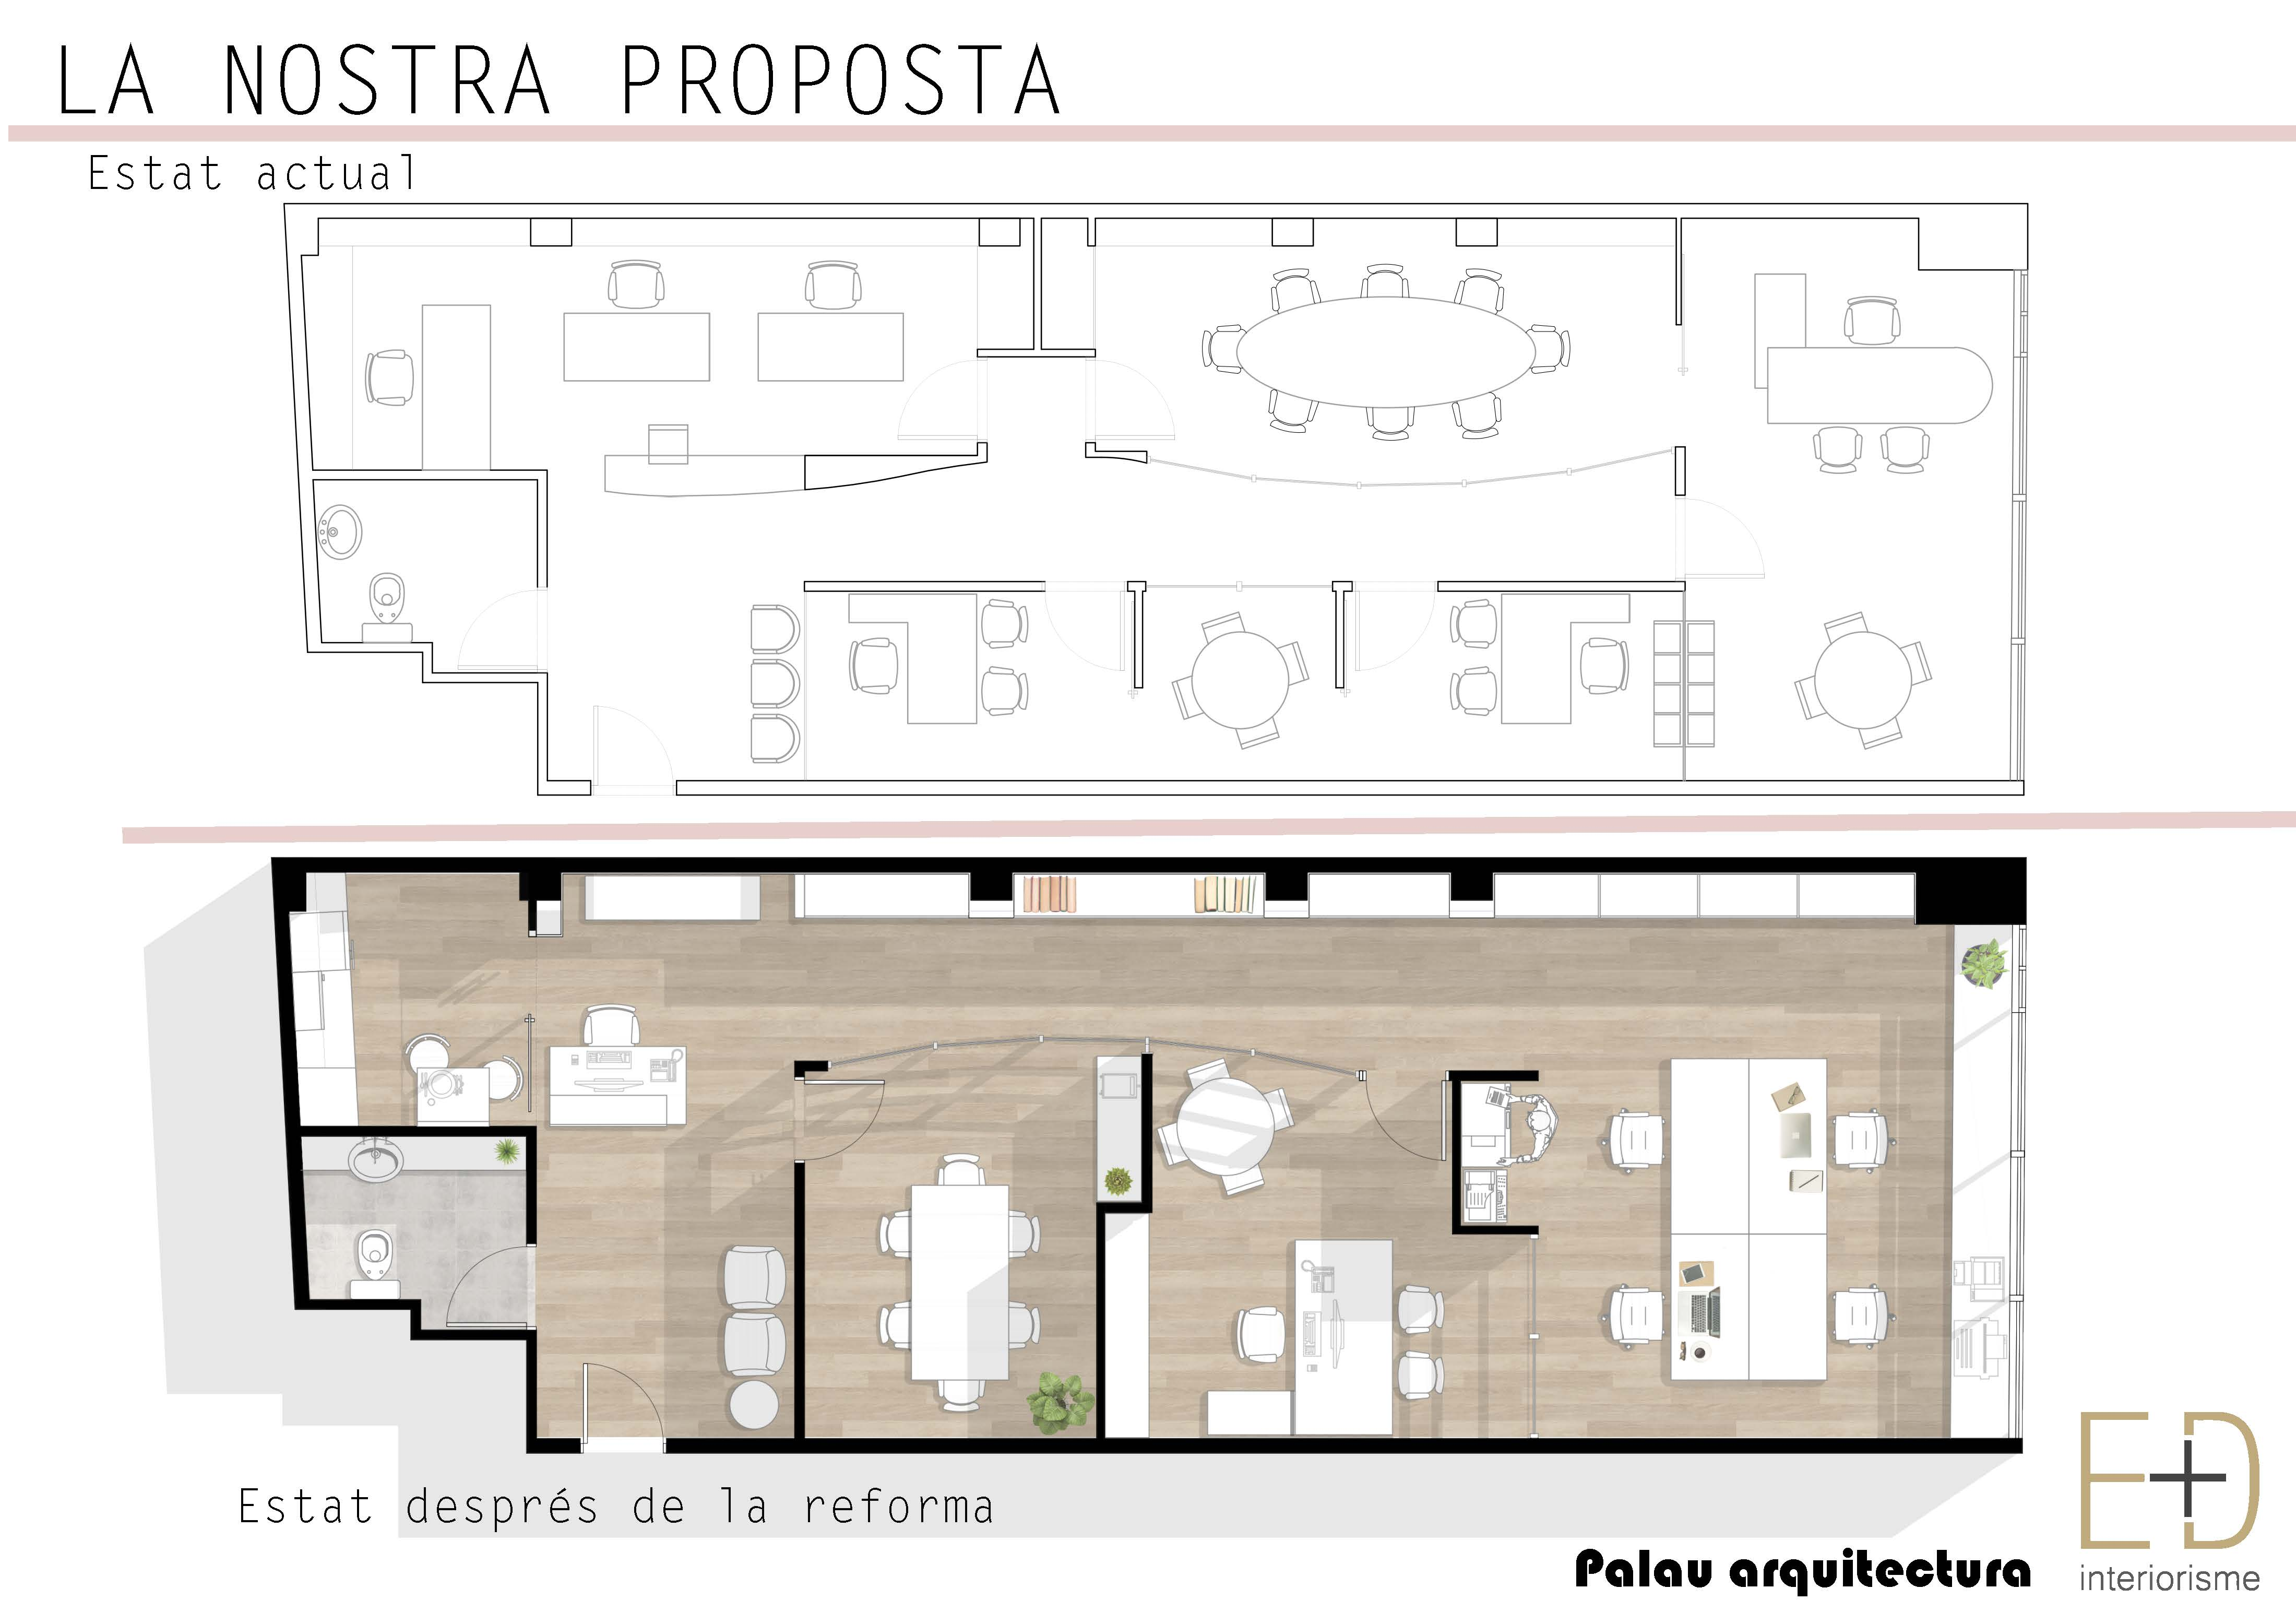 Reforma integral de despatx - Estat actual - PALAU ARQUITECTURA